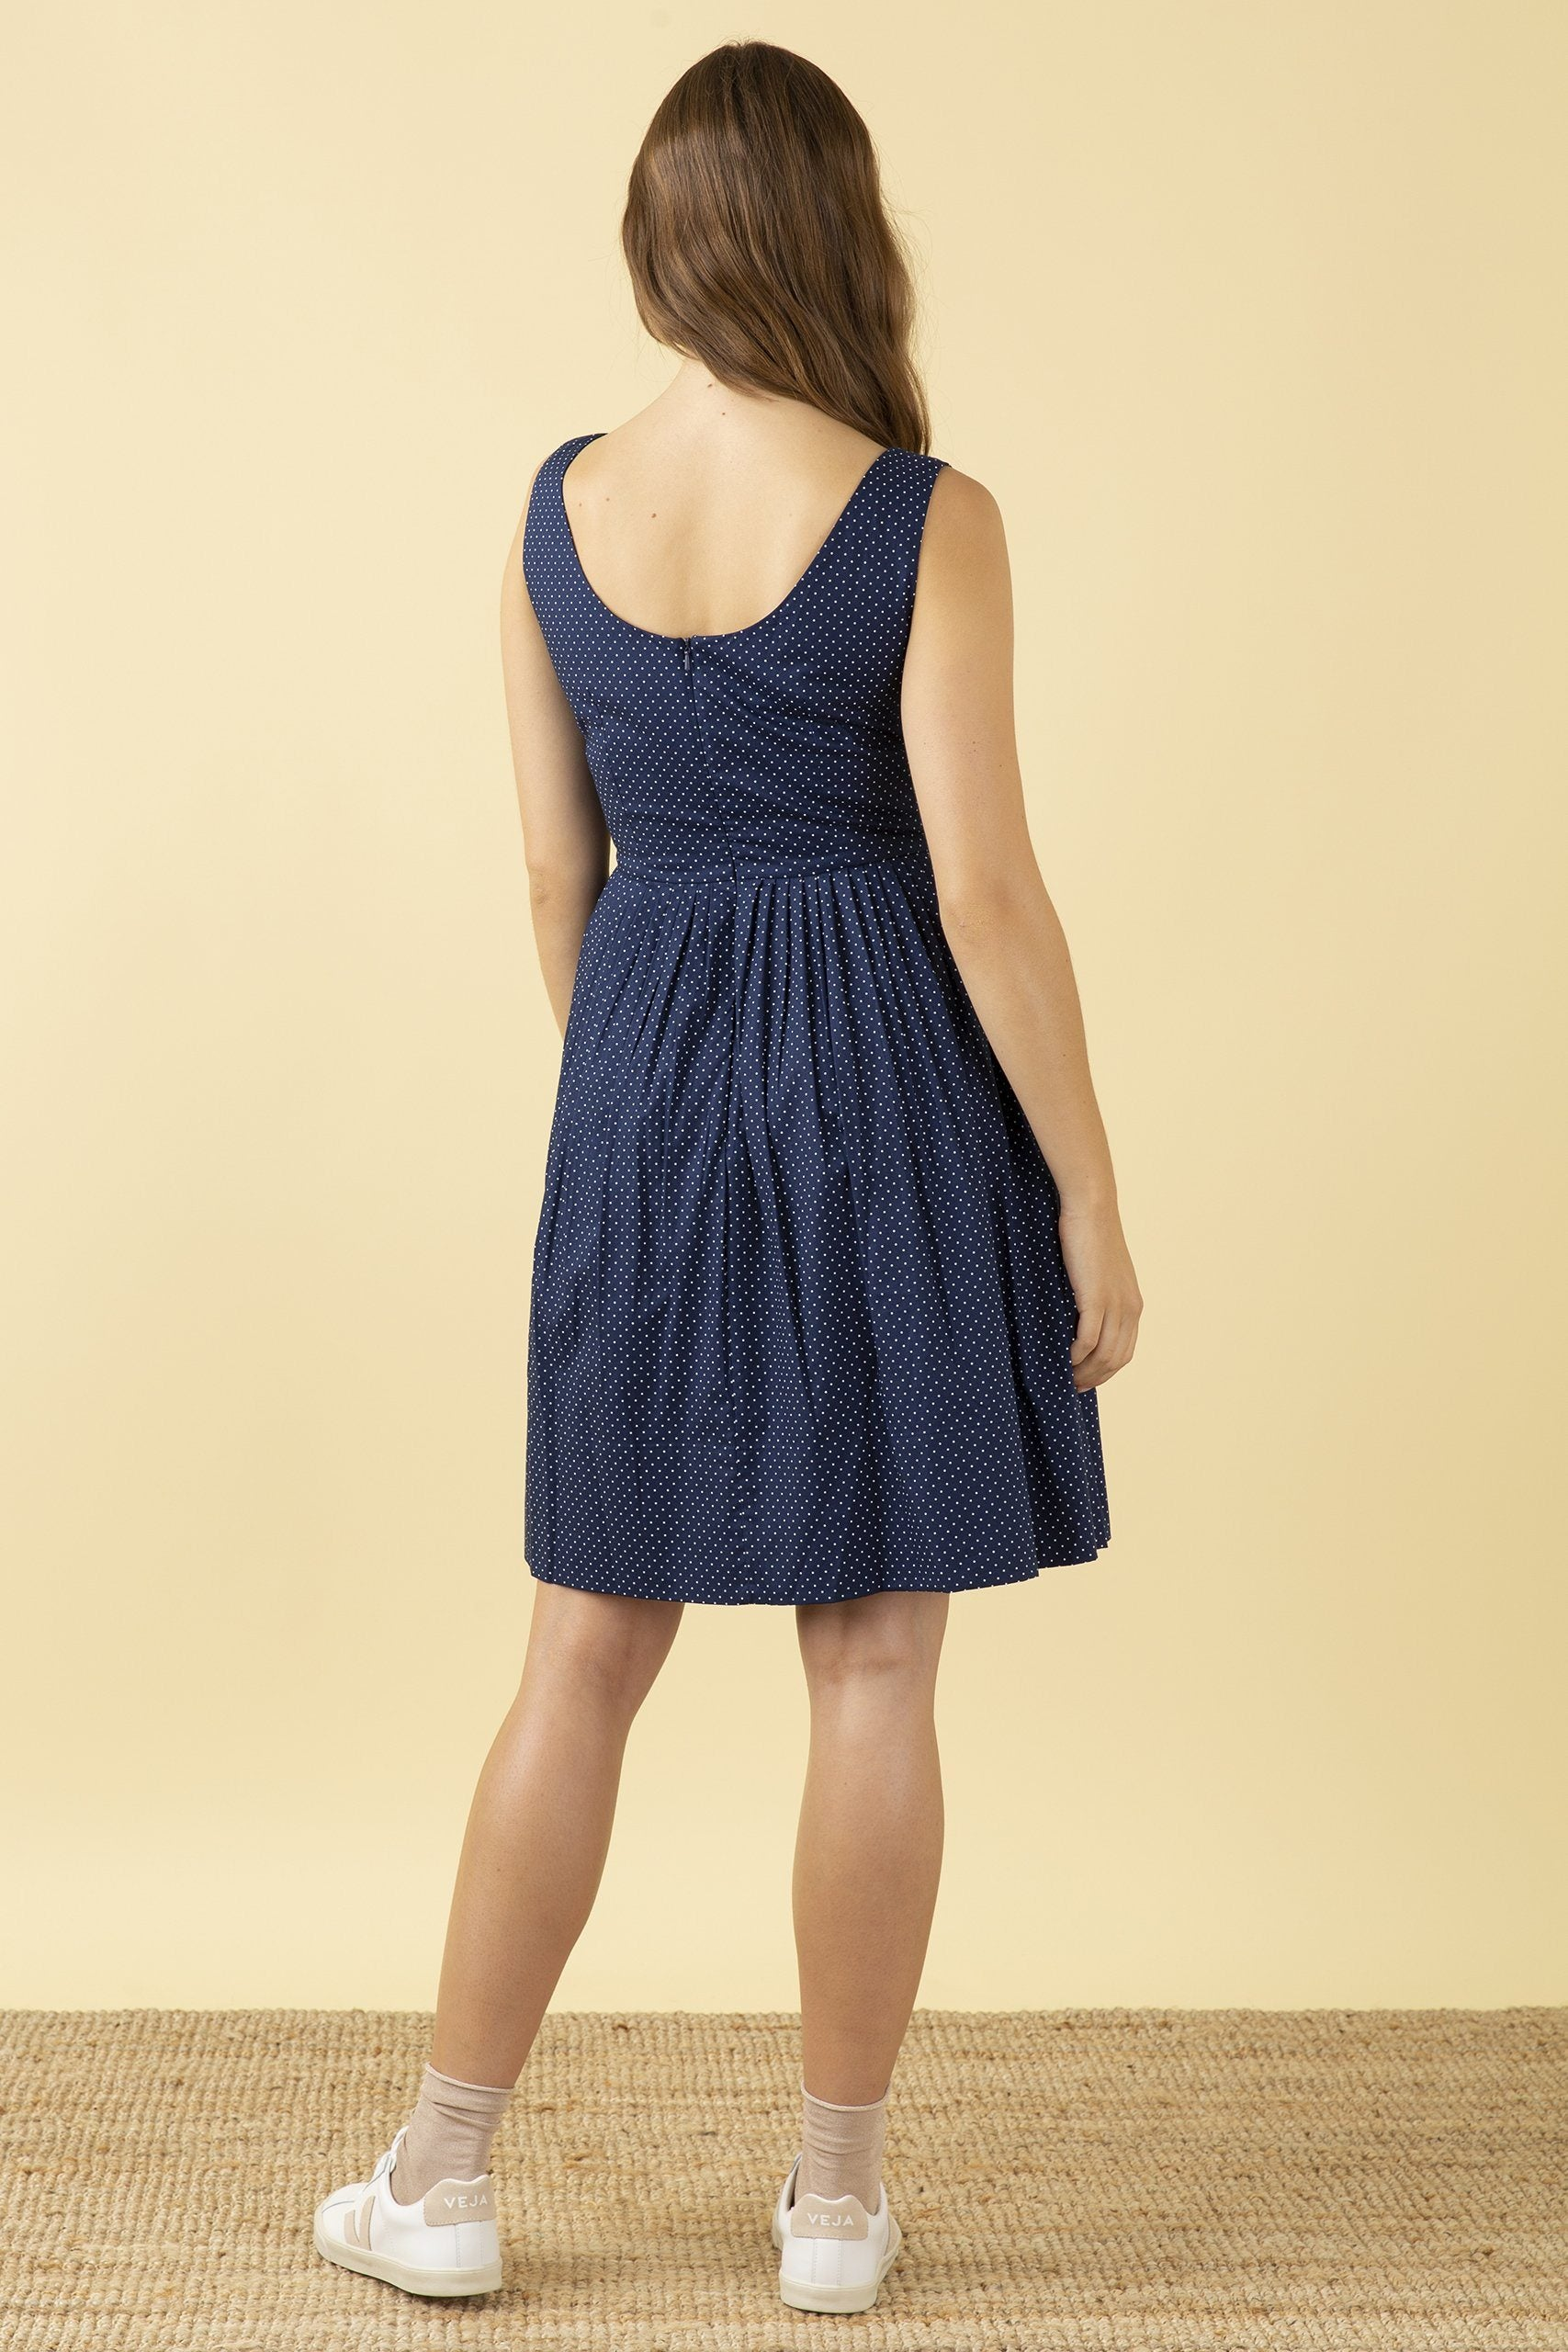 Emily & Fin Abigail Dress Navy Pin Dot - BouChic